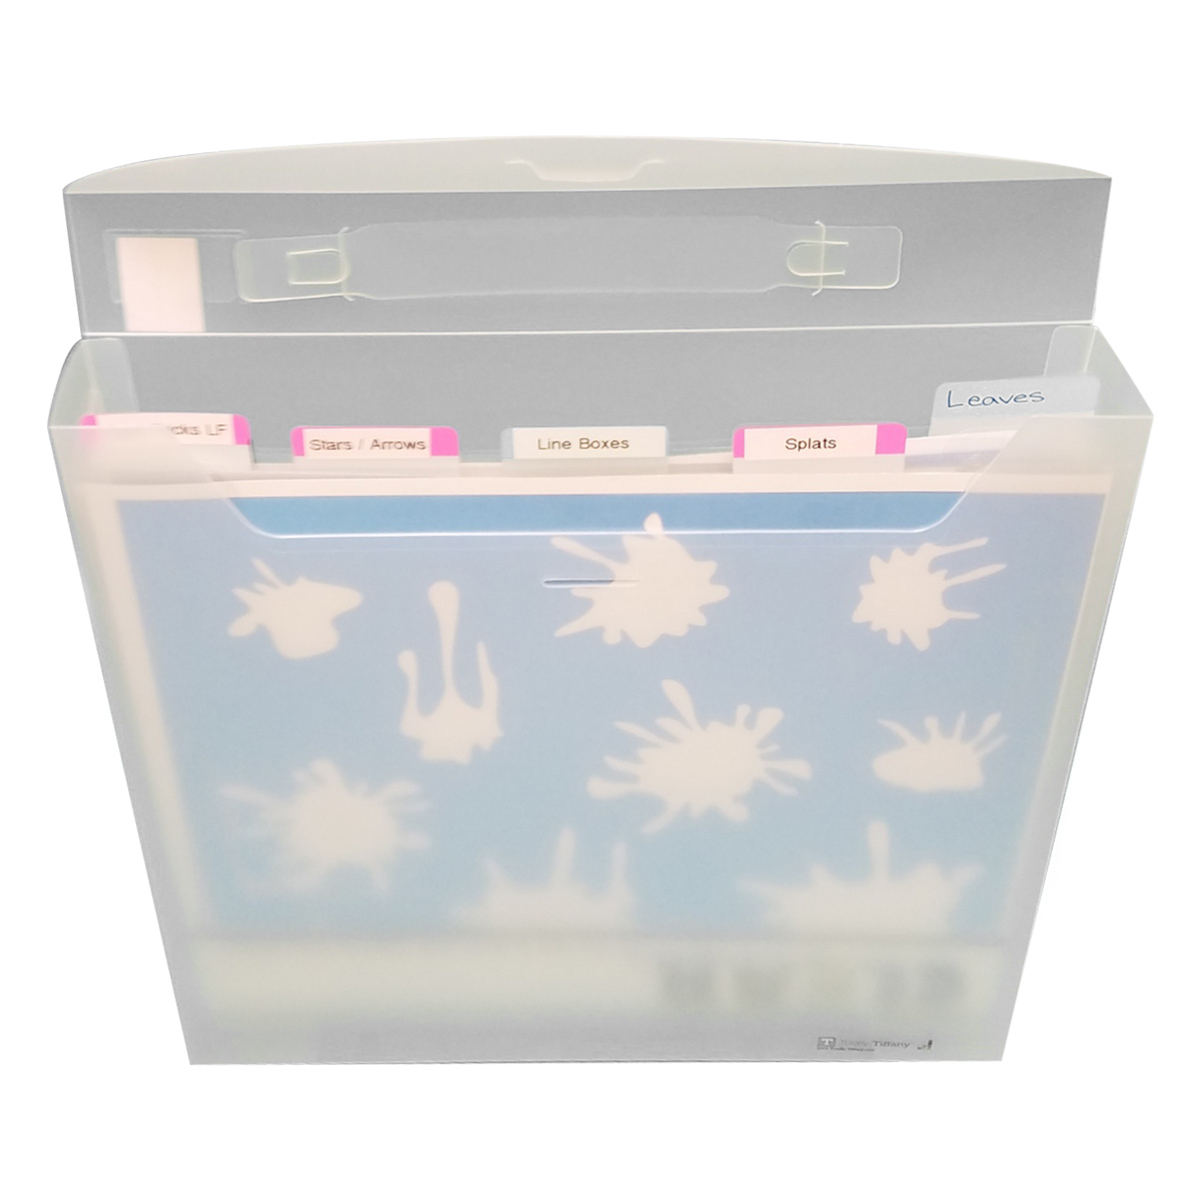 12x12 Stencil Organizer, Storage for craft supplies